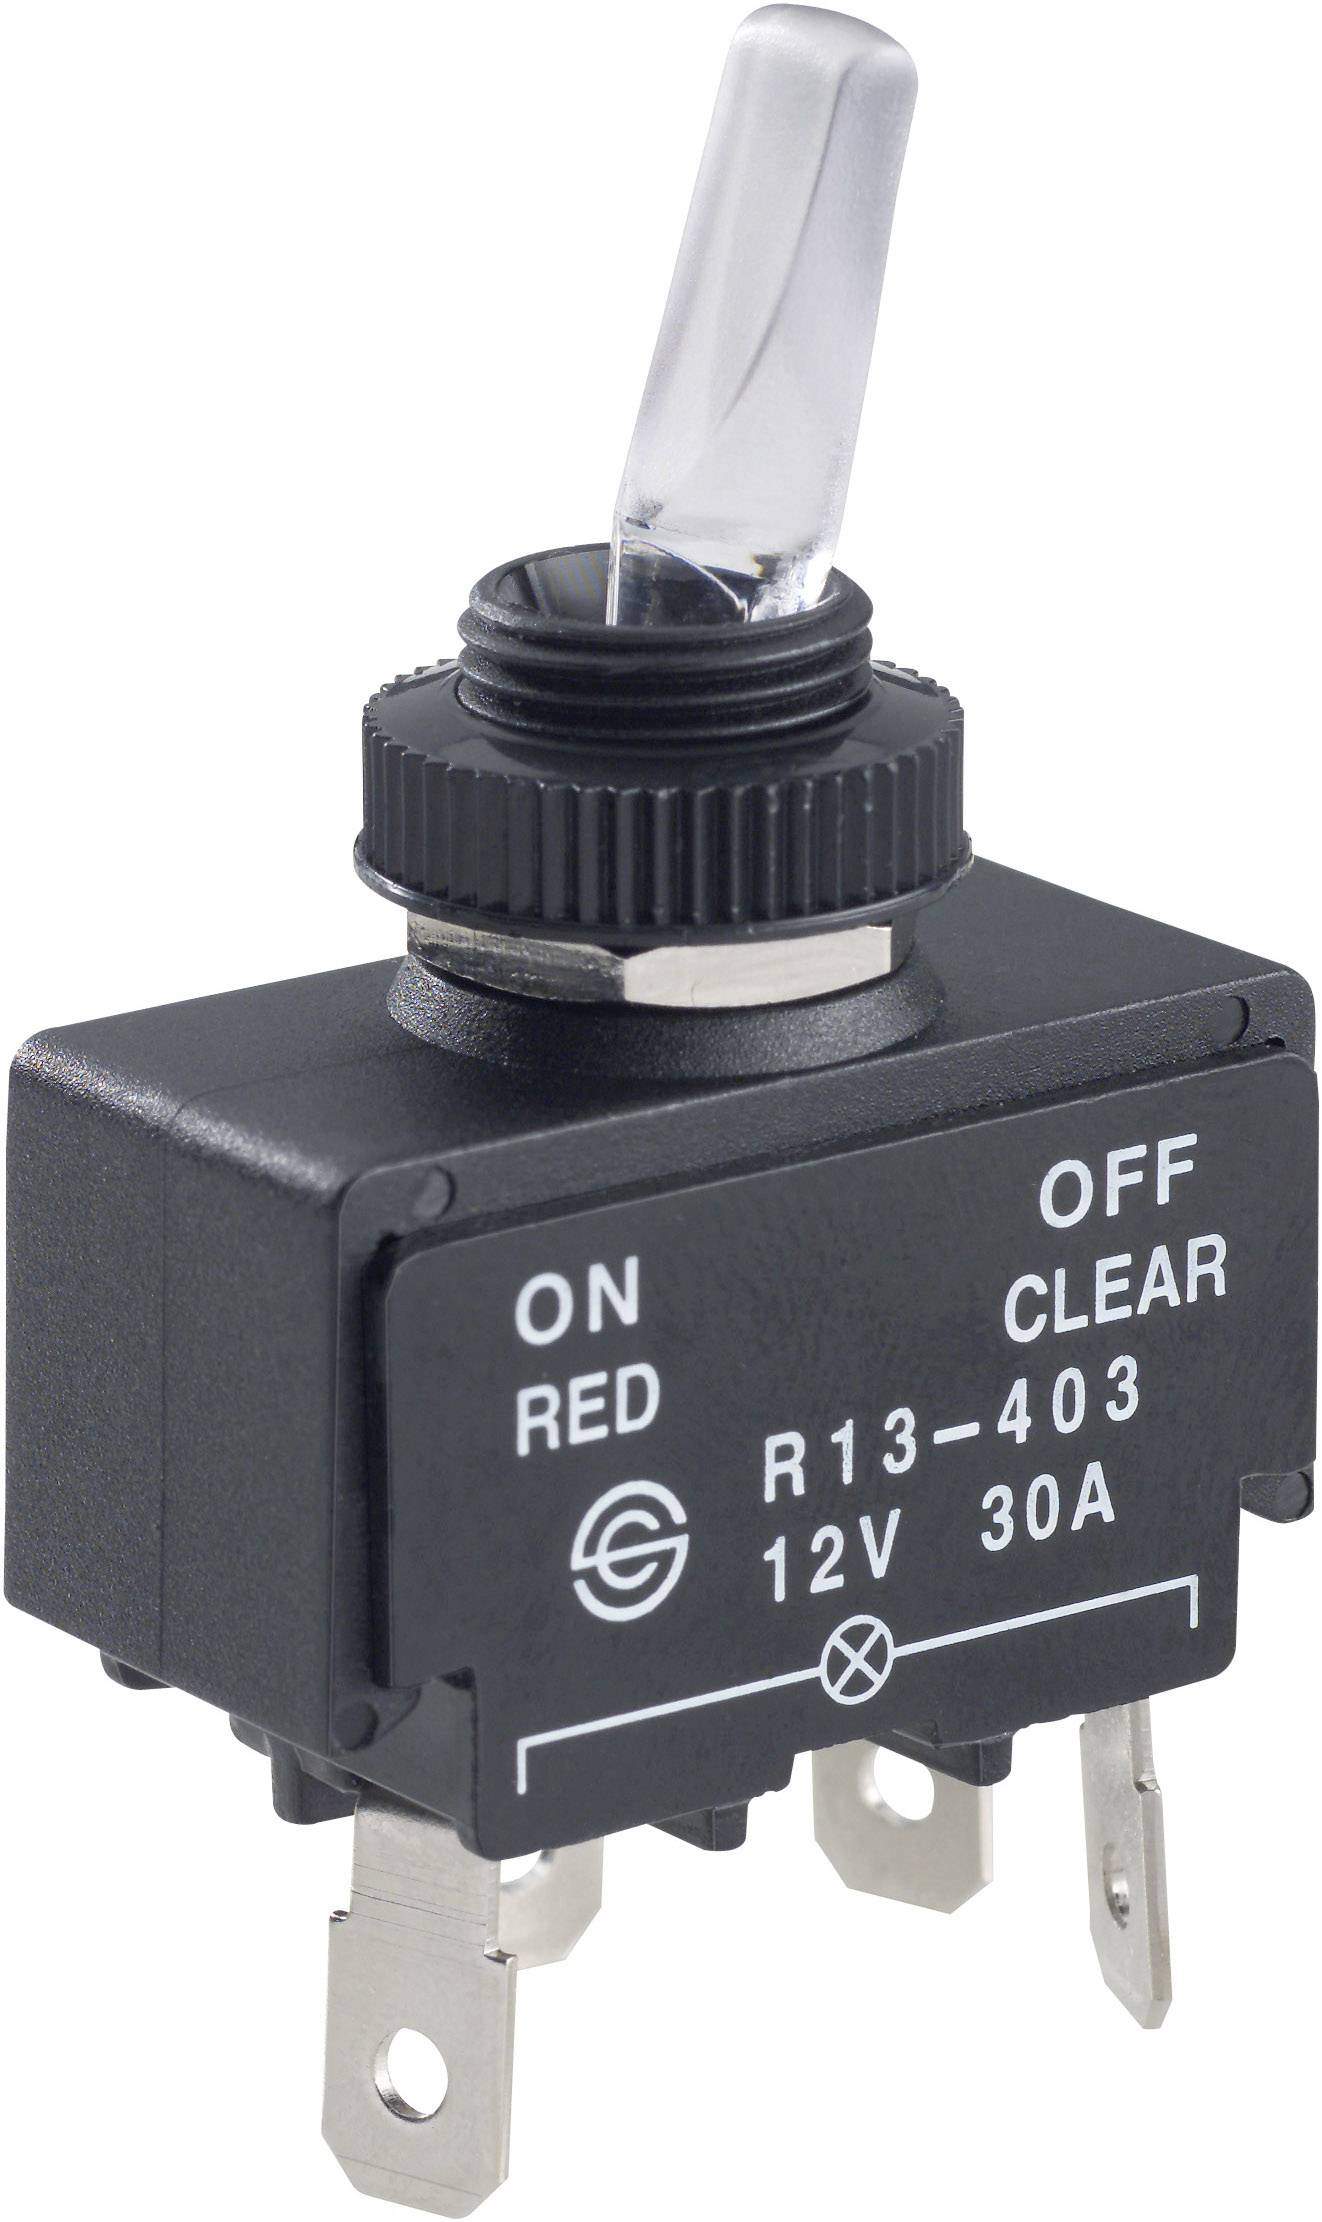 SCI R13-403A Toggle switch 12 Vdc 30 A 1 x Off/On latch 1 pc(s ... on